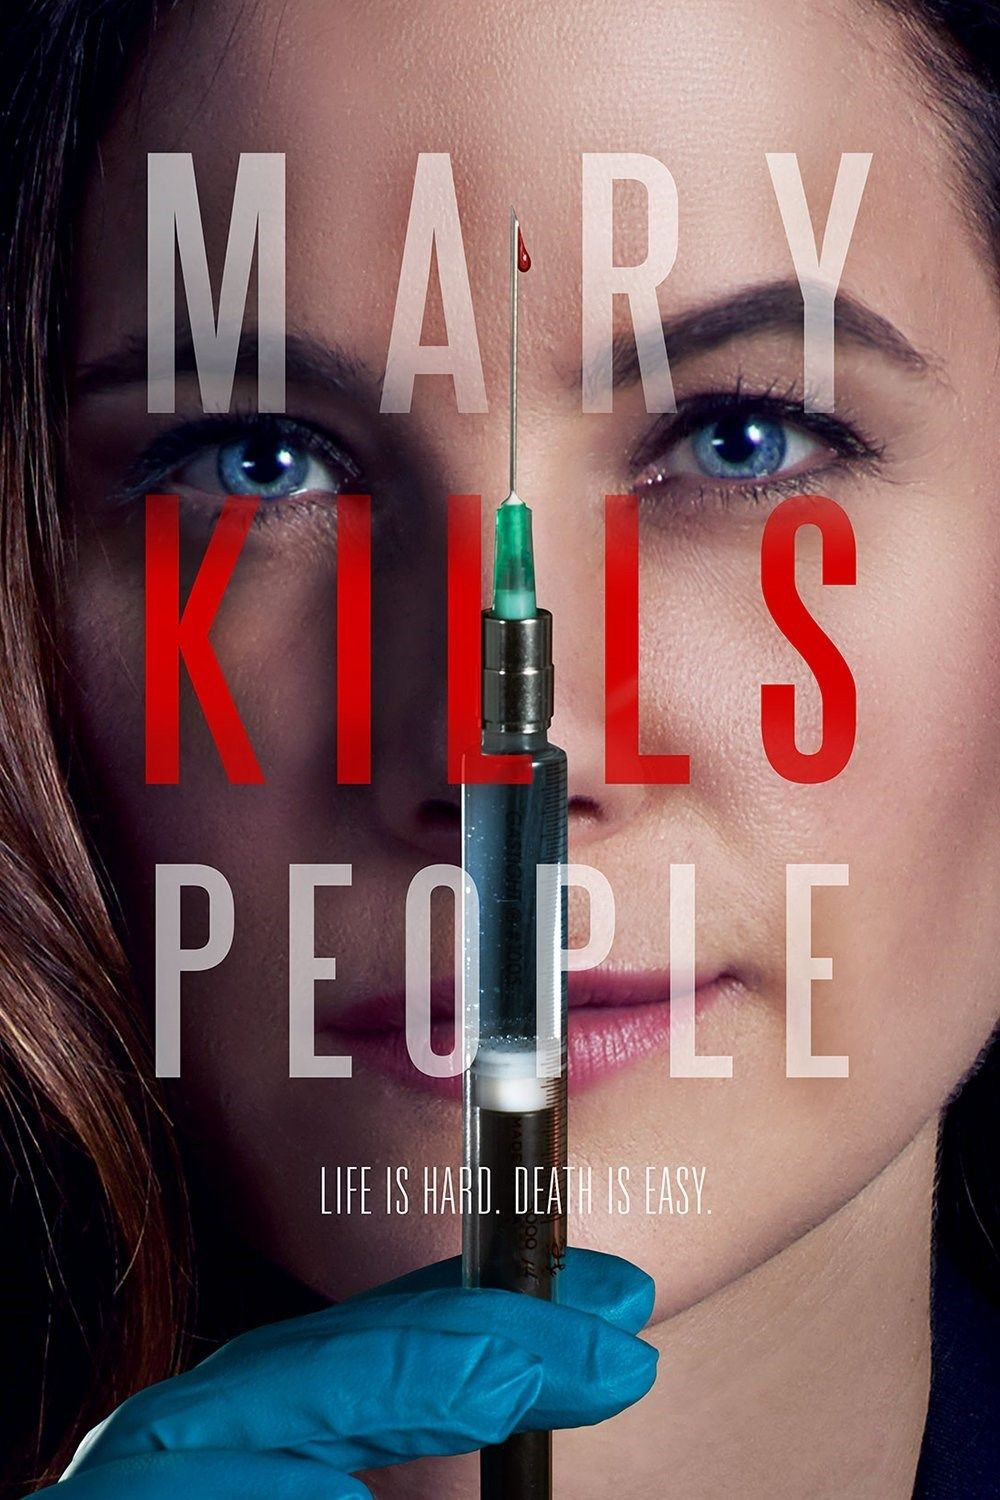 Mary Kills People Poster   Posters   Pinterest